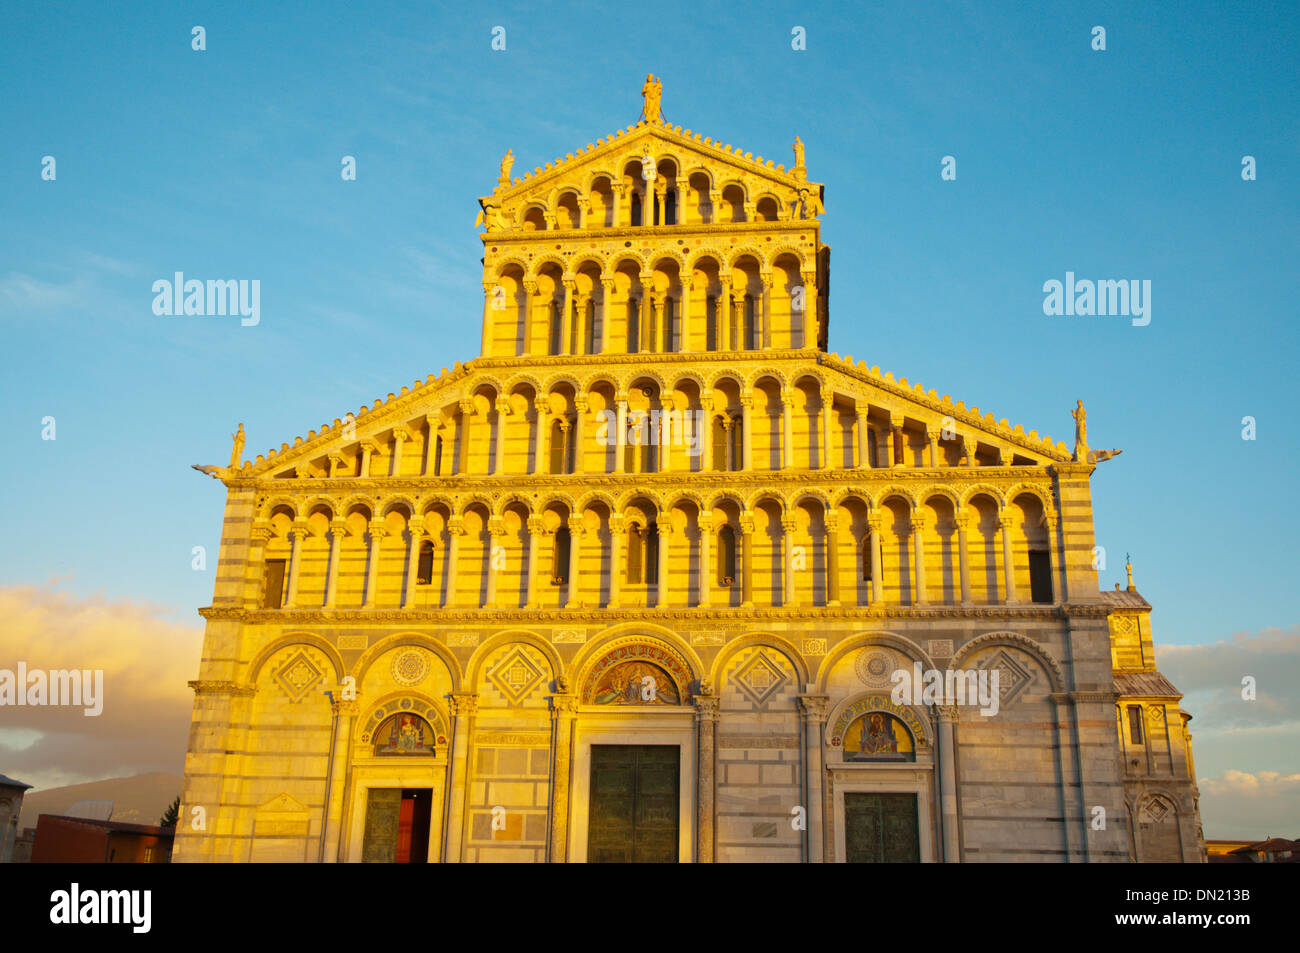 Duomo the Cathedral Campo dei Miracoli the field of miracles Pisa city Tuscany region Italy Europe - Stock Image